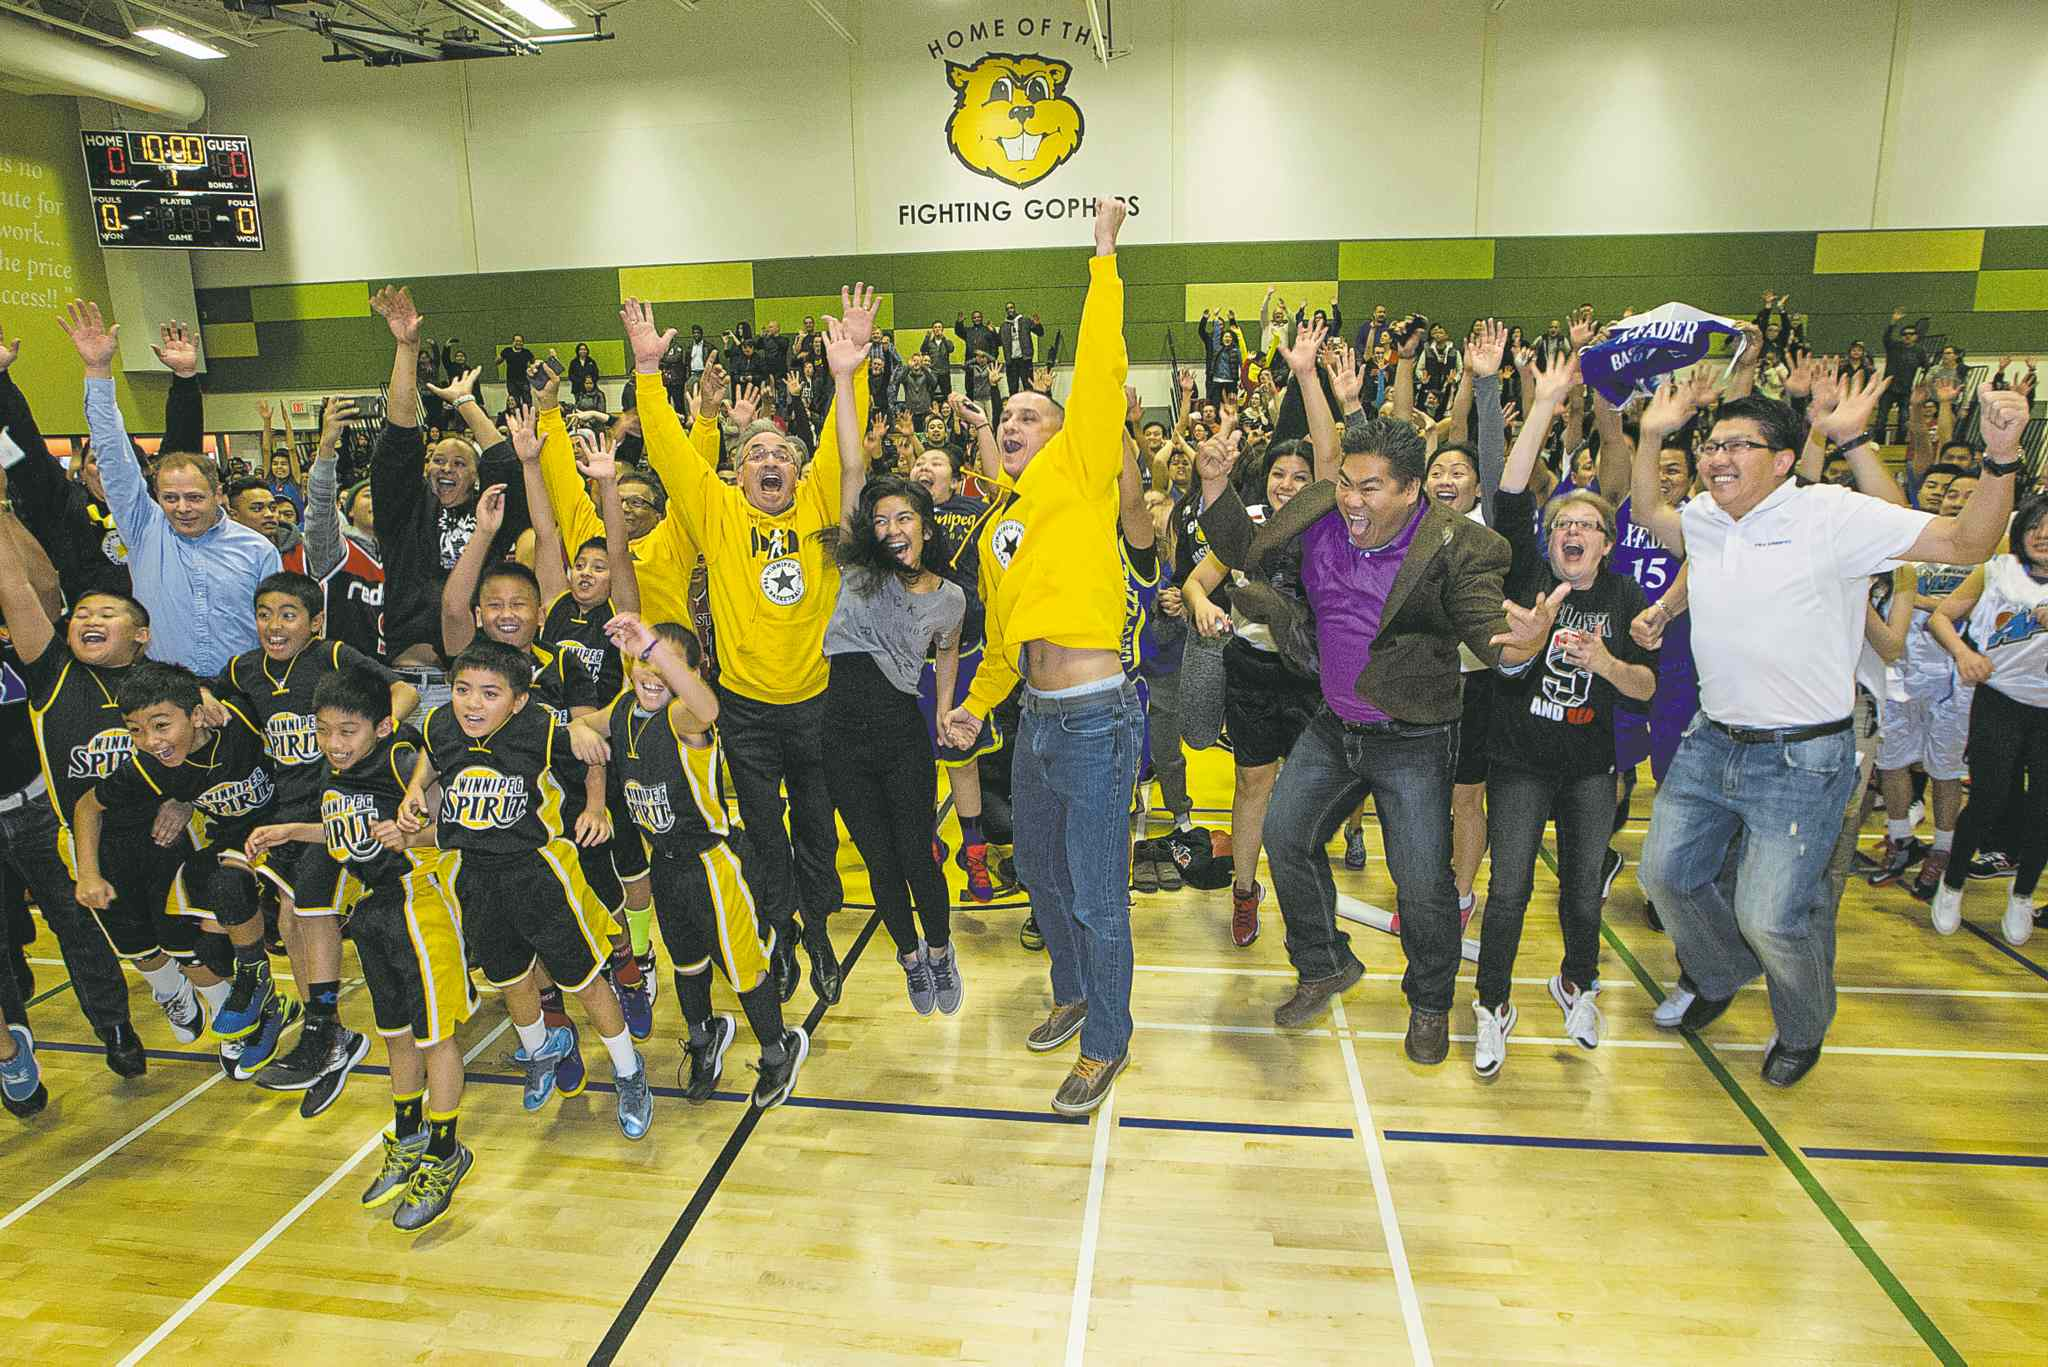 MIKE DEAL / WINNIPEG FREE PRESS�Winnipeg�s biggest jump shot� � led by Kevin Chief (centre), NDP cabinet minister and former University of Winnipeg basketball player.